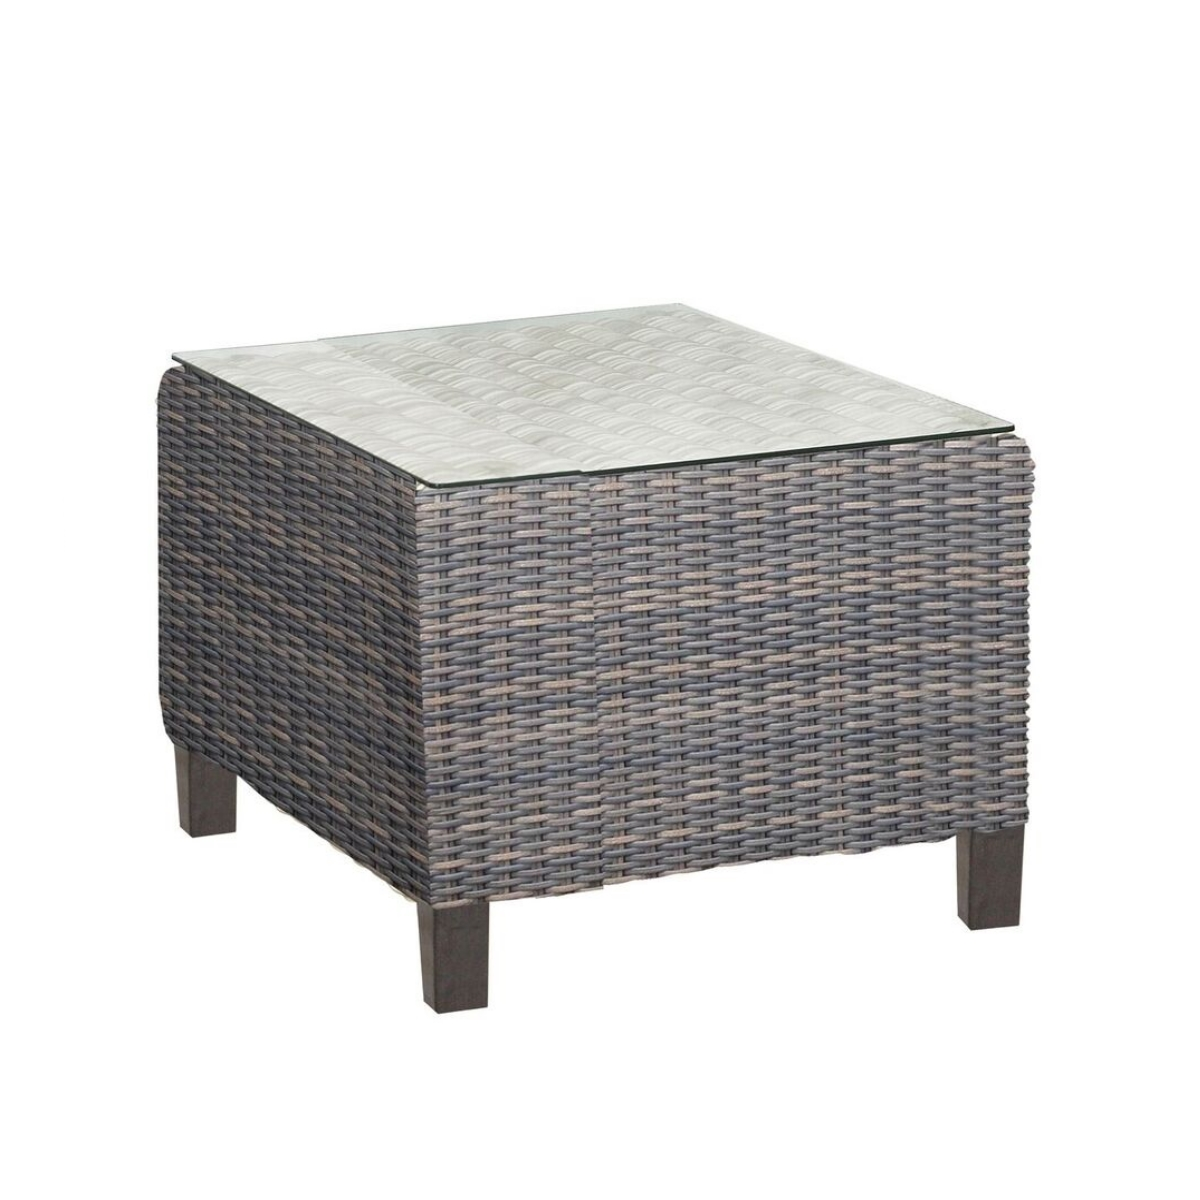 San Marino Outdoor Patio Furniture End Table  PatioHQ